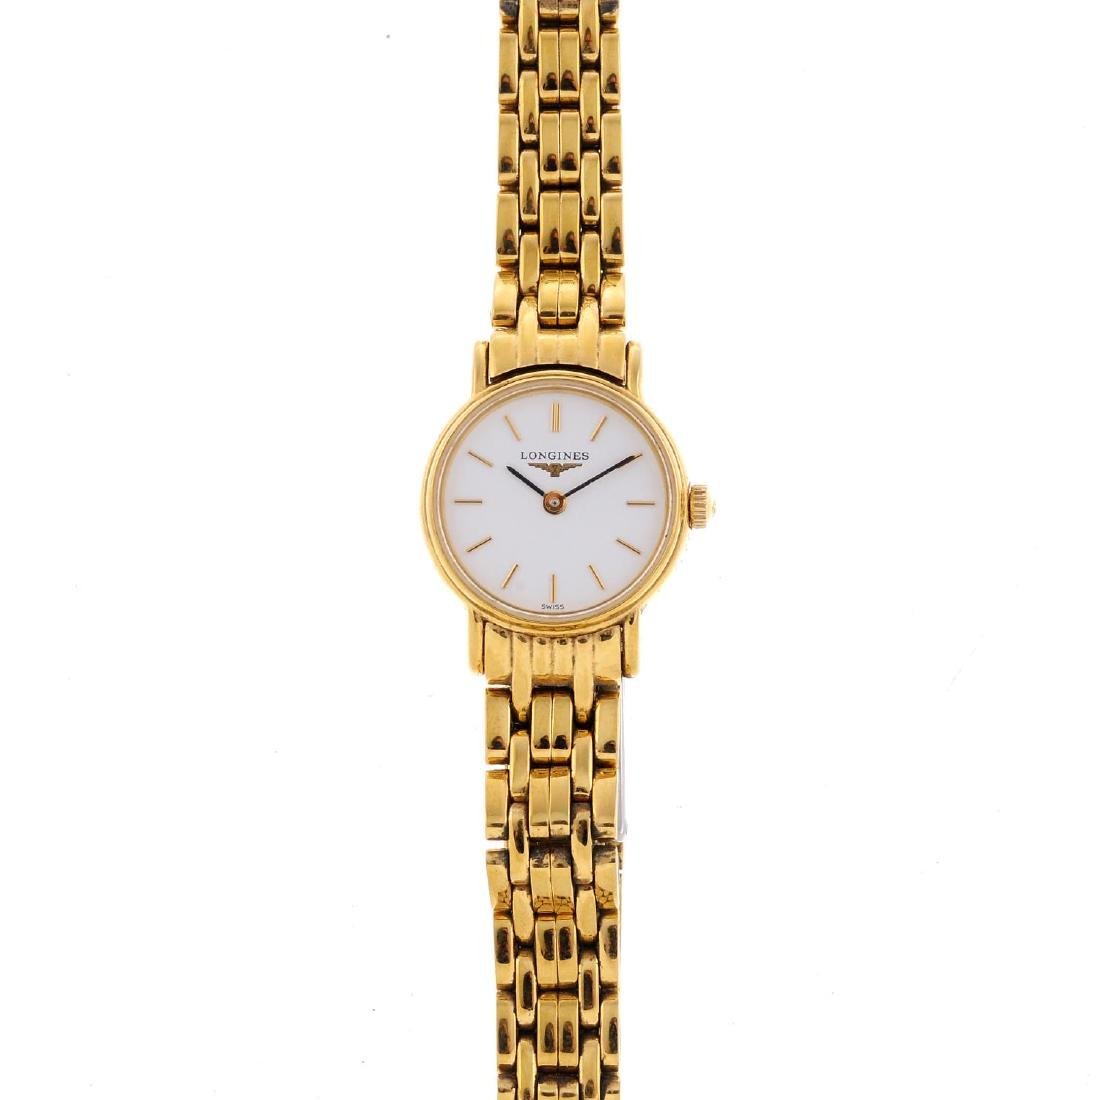 LONGINES - a lady's Presence bracelet watch. Gold